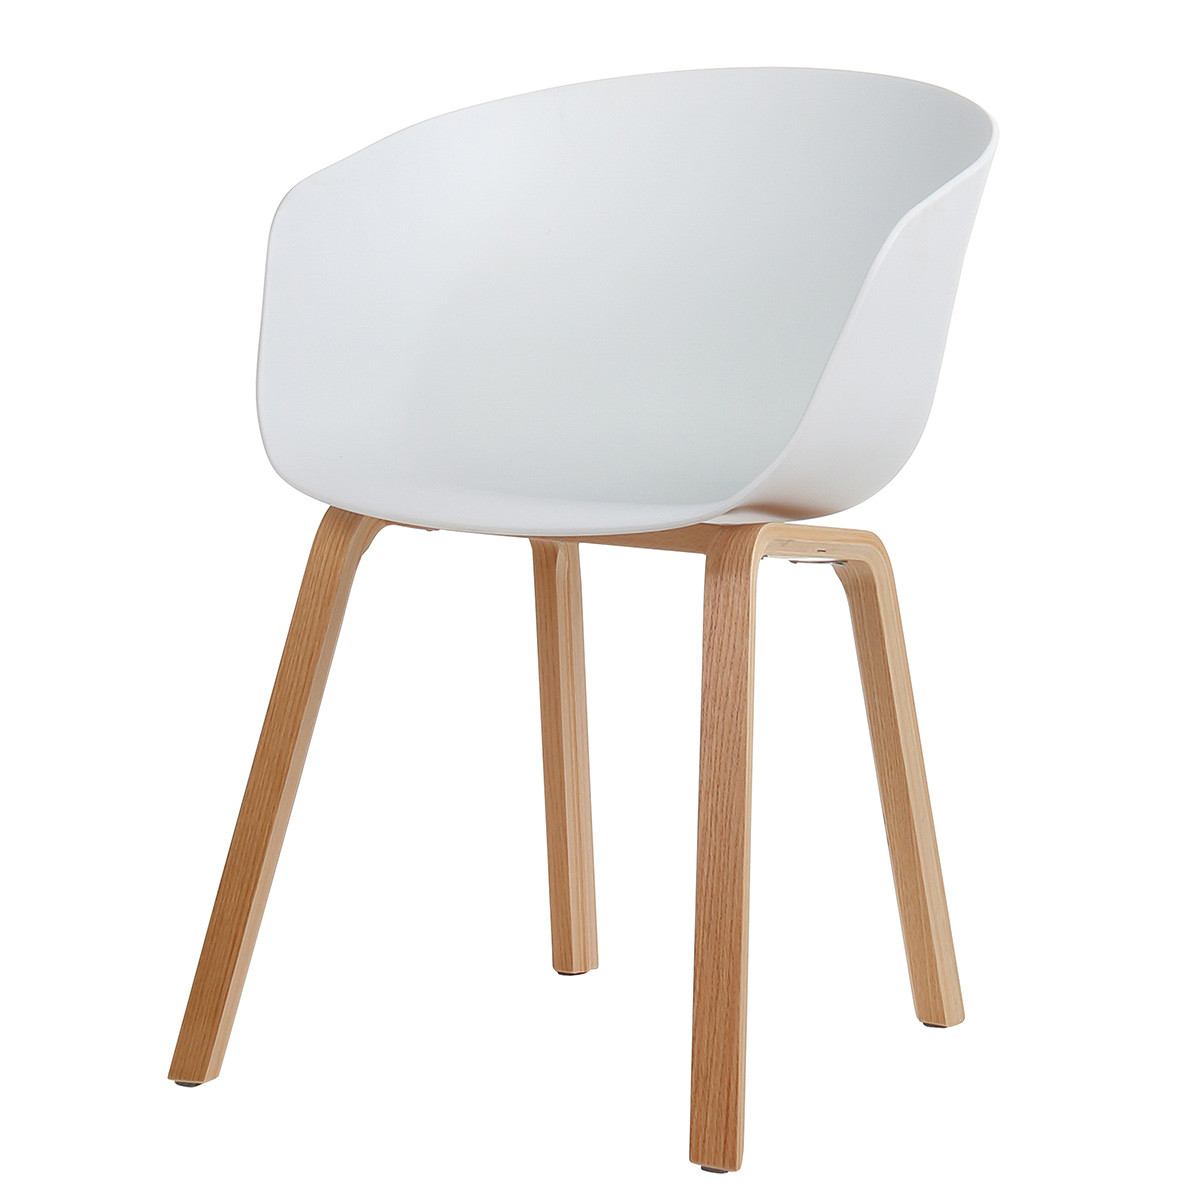 Danish Mid Century Modern White Side Chair, Curved Wood Legs